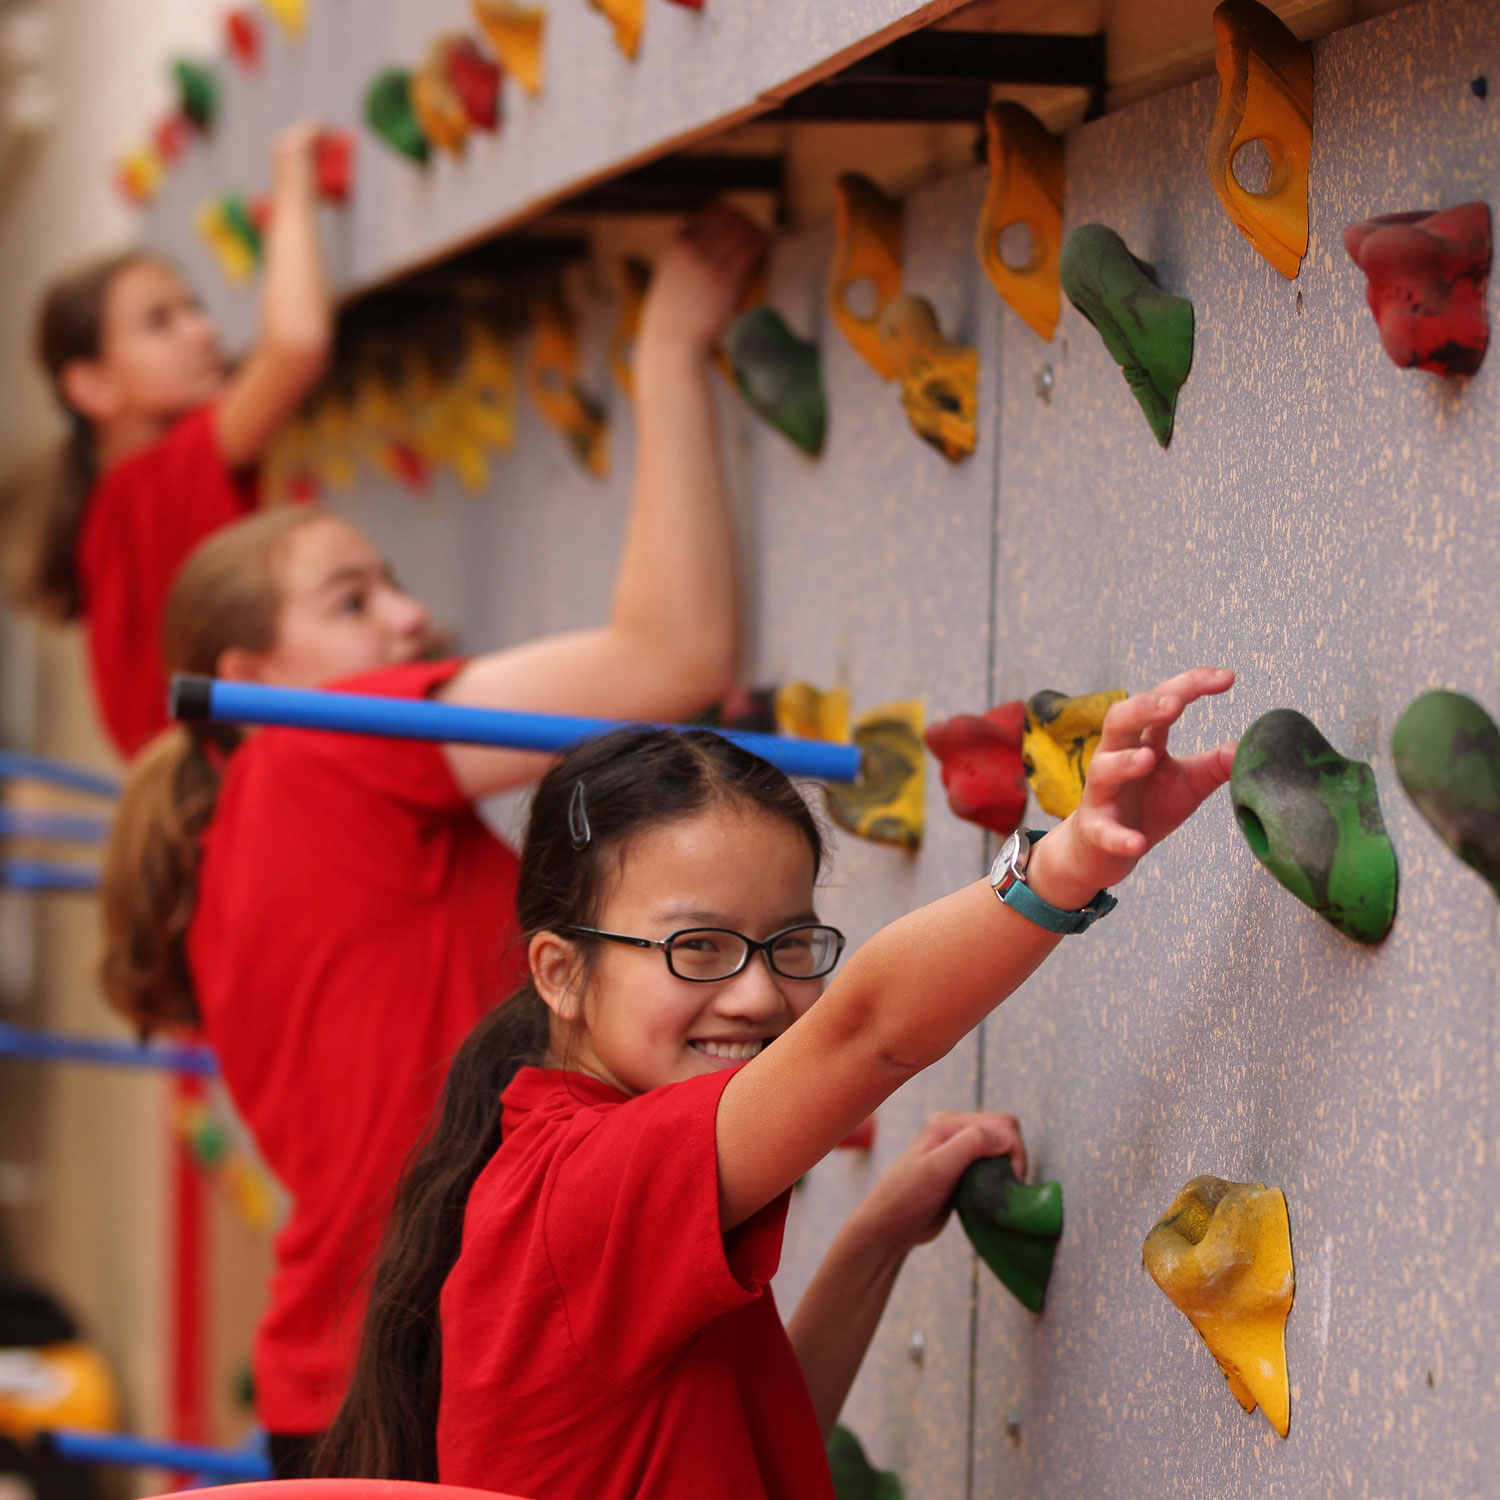 Middle School student on climbing wall